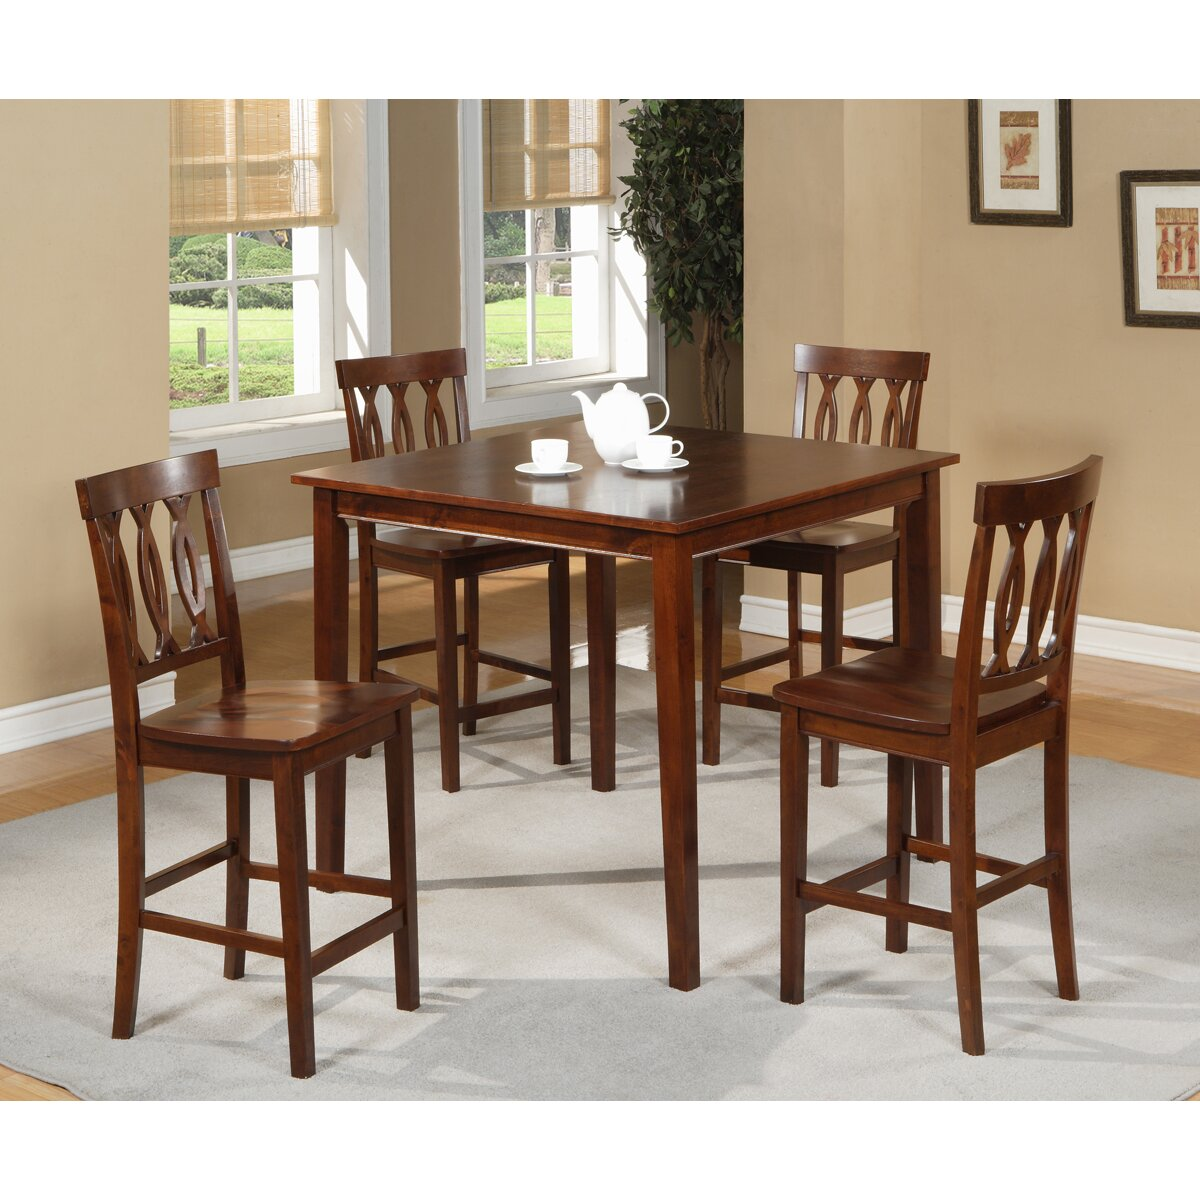 Williams import co 5 piece counter height dining set for Counter height dining set